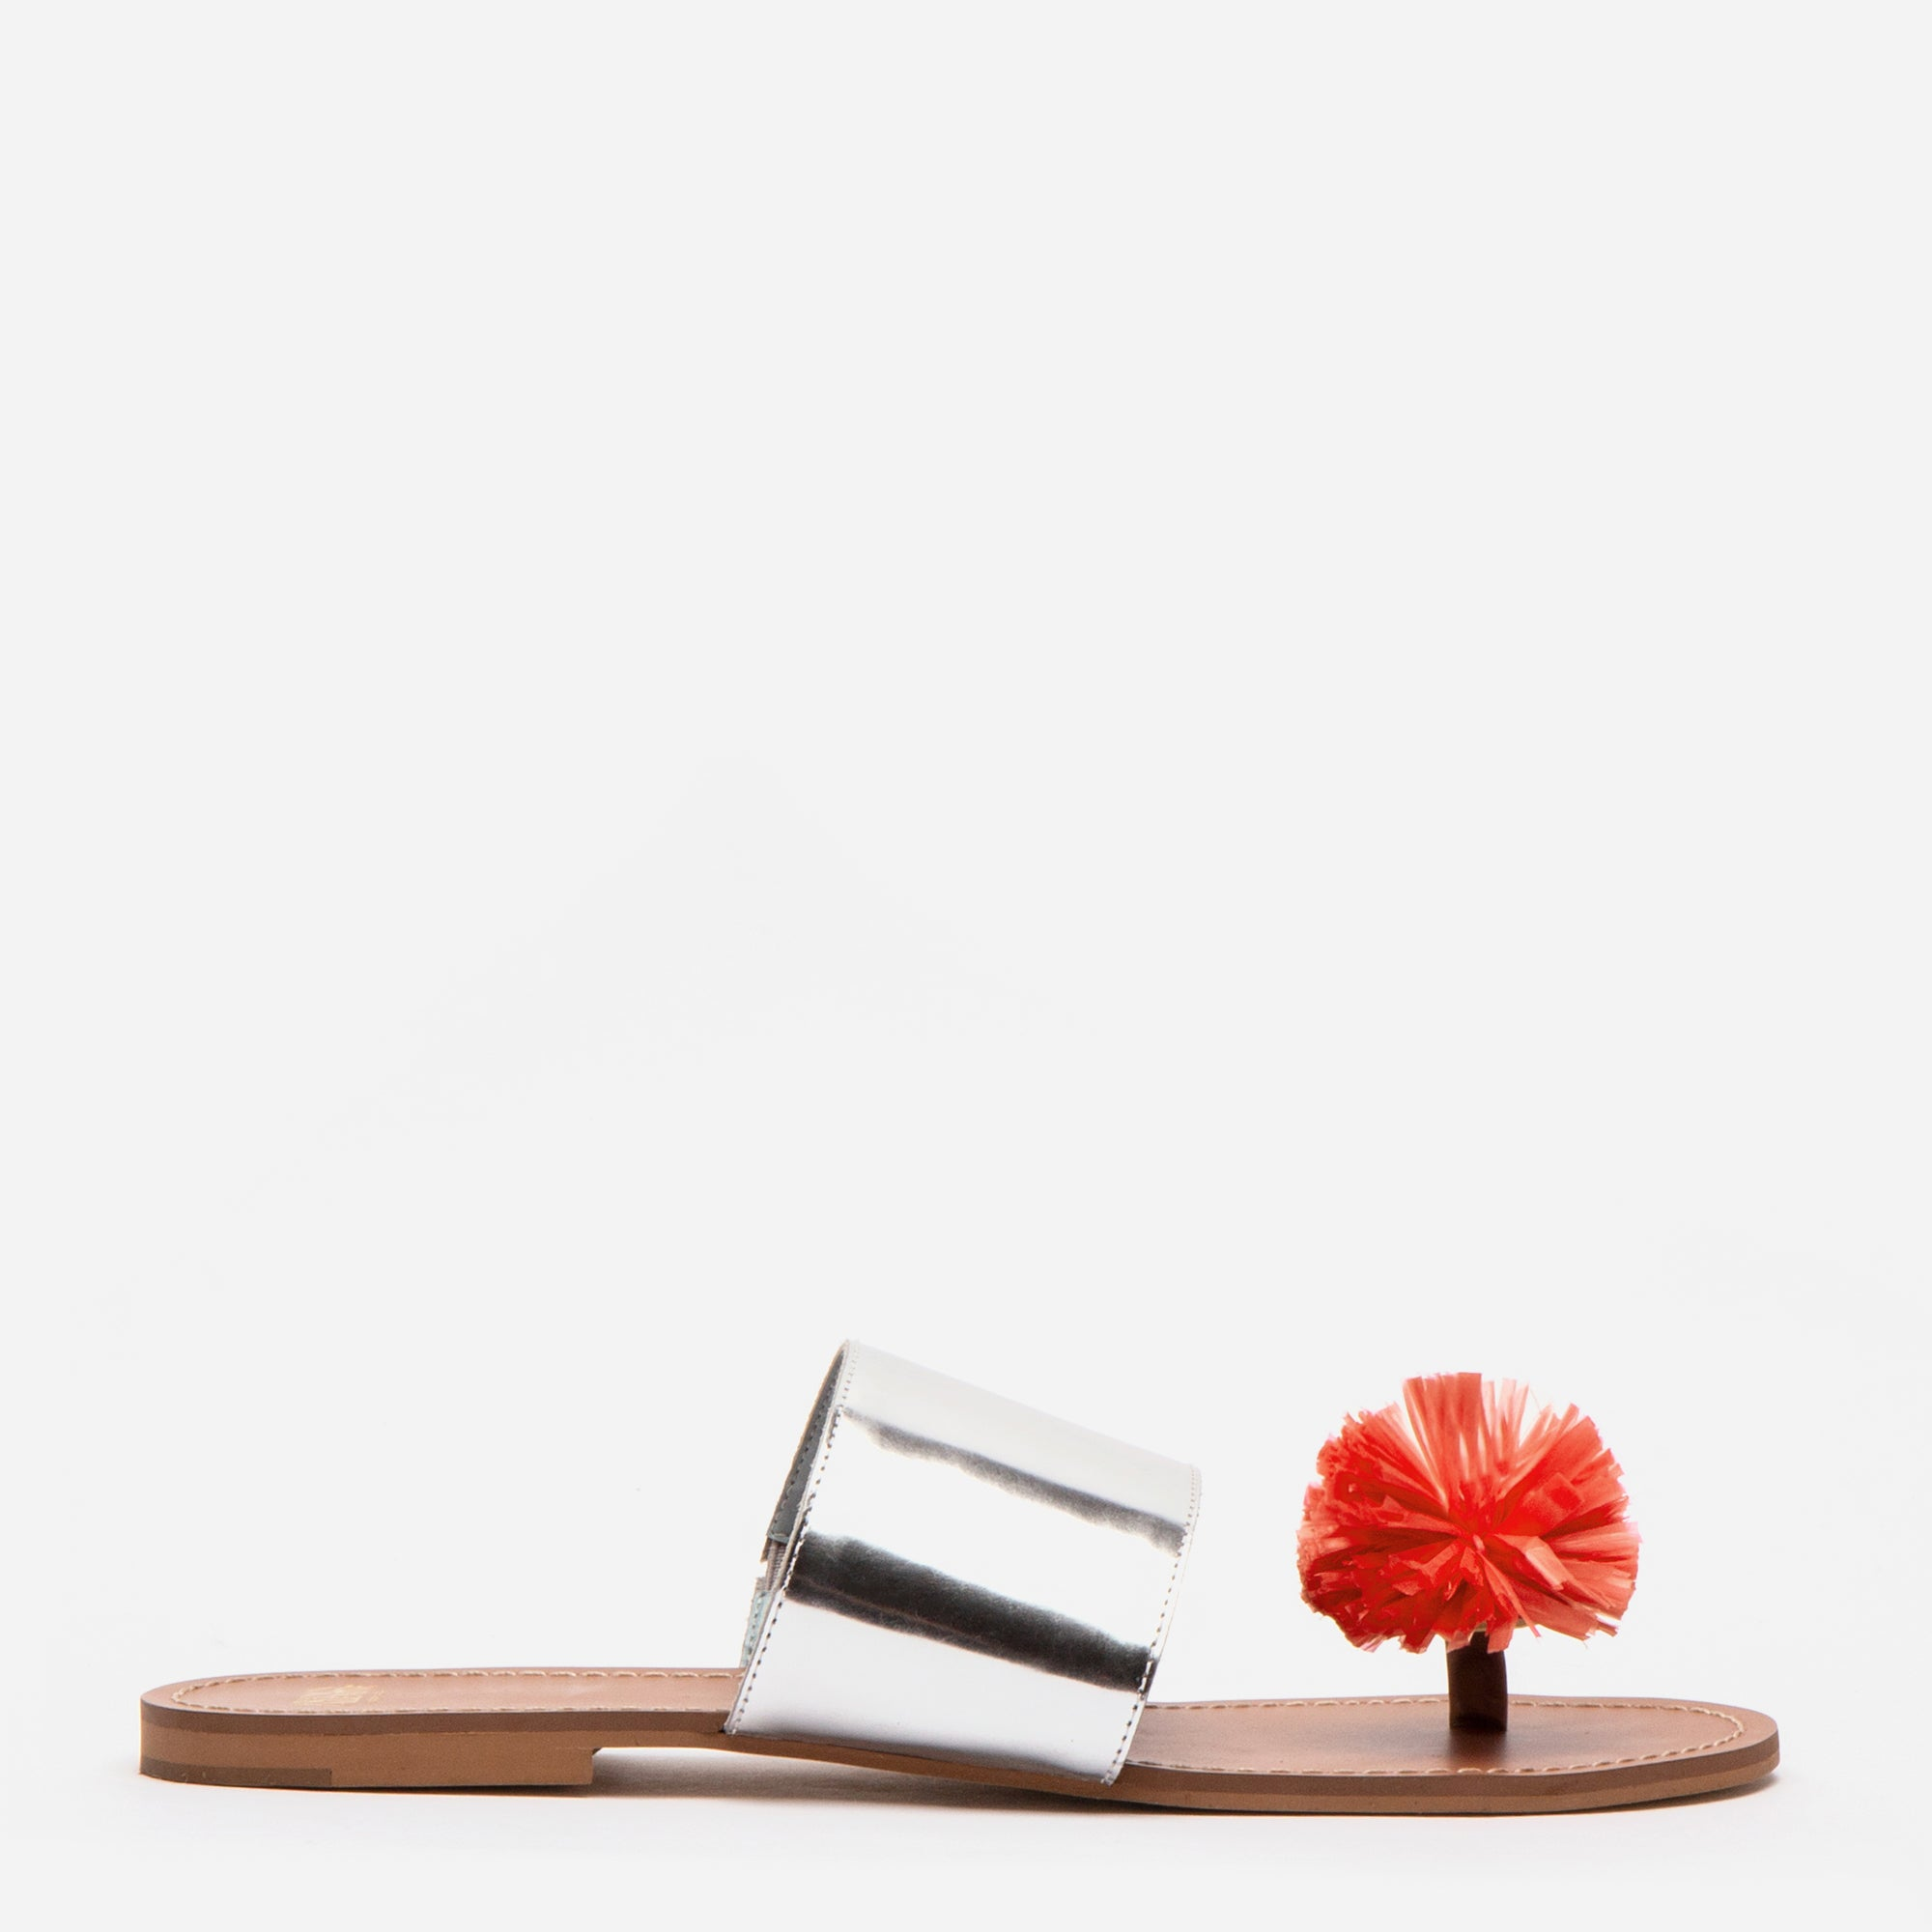 Clementine Pom Pom Sandals Silver Coral